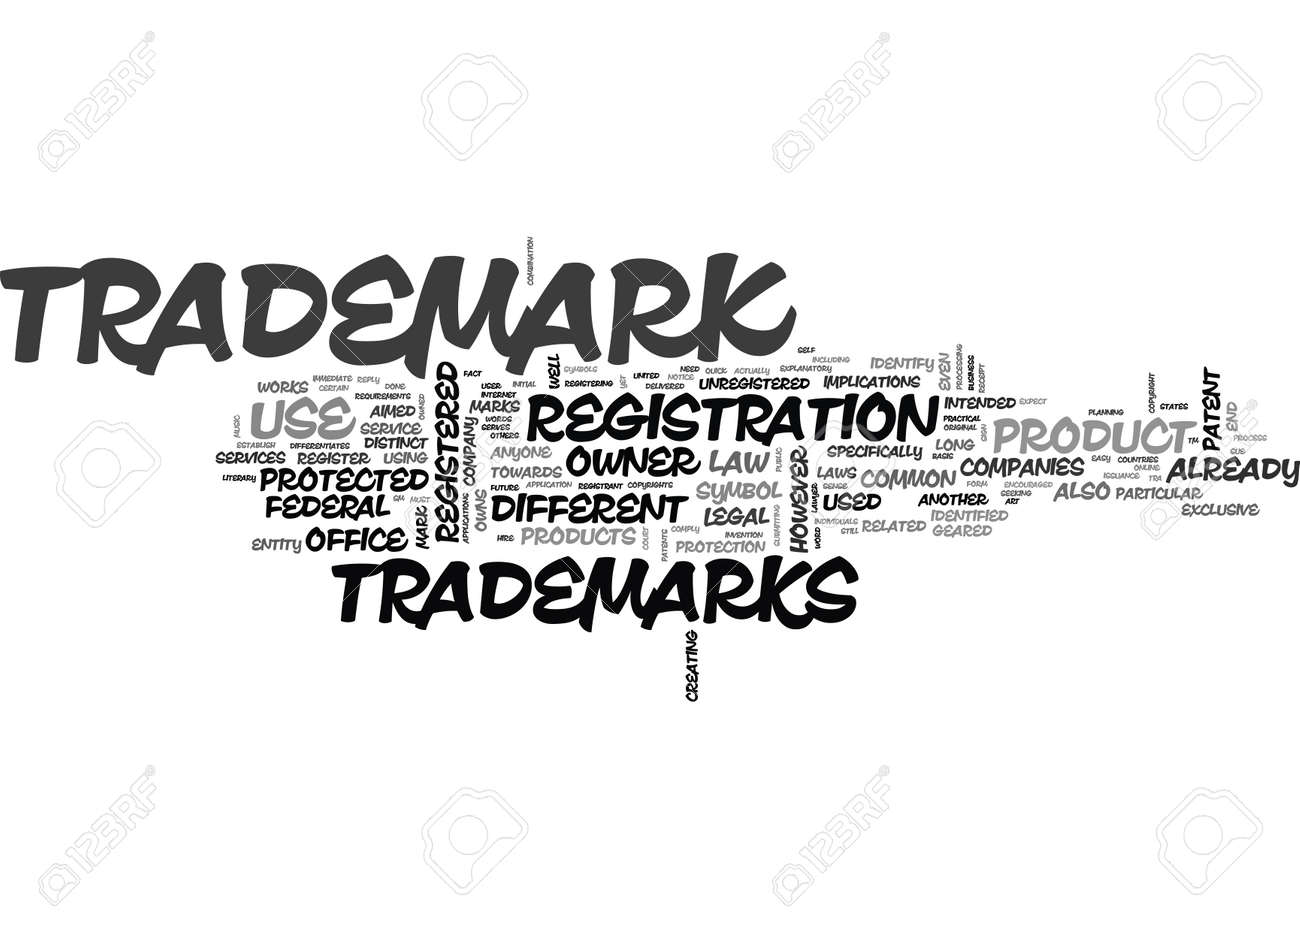 WHAT ARE TRADEMARKS TEXT WORD CLOUD CONCEPT